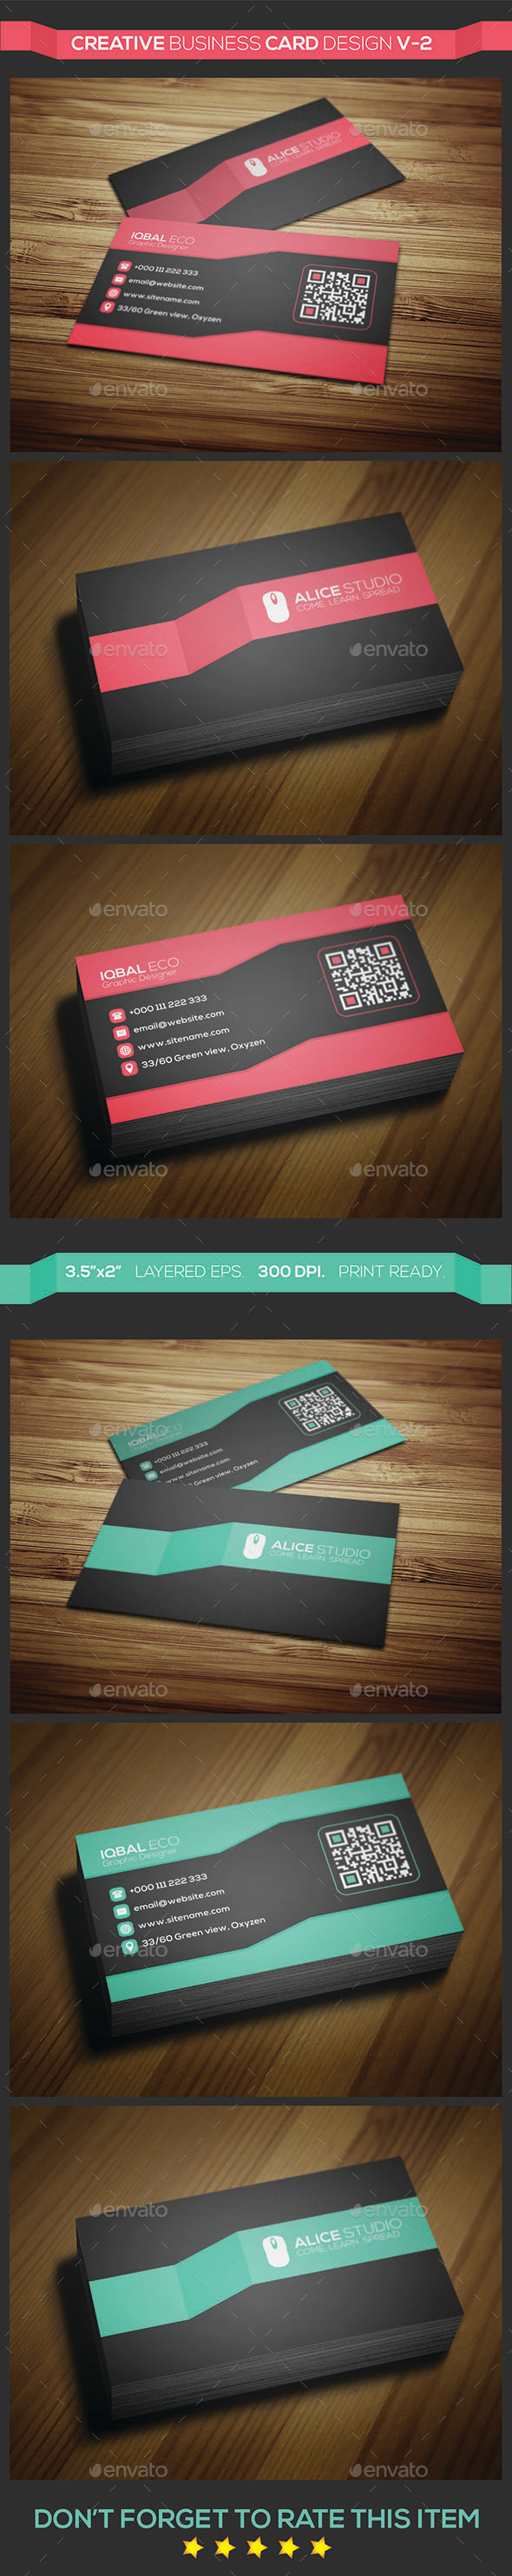 Creative Business Card Design V-2 - Creative Business Cards